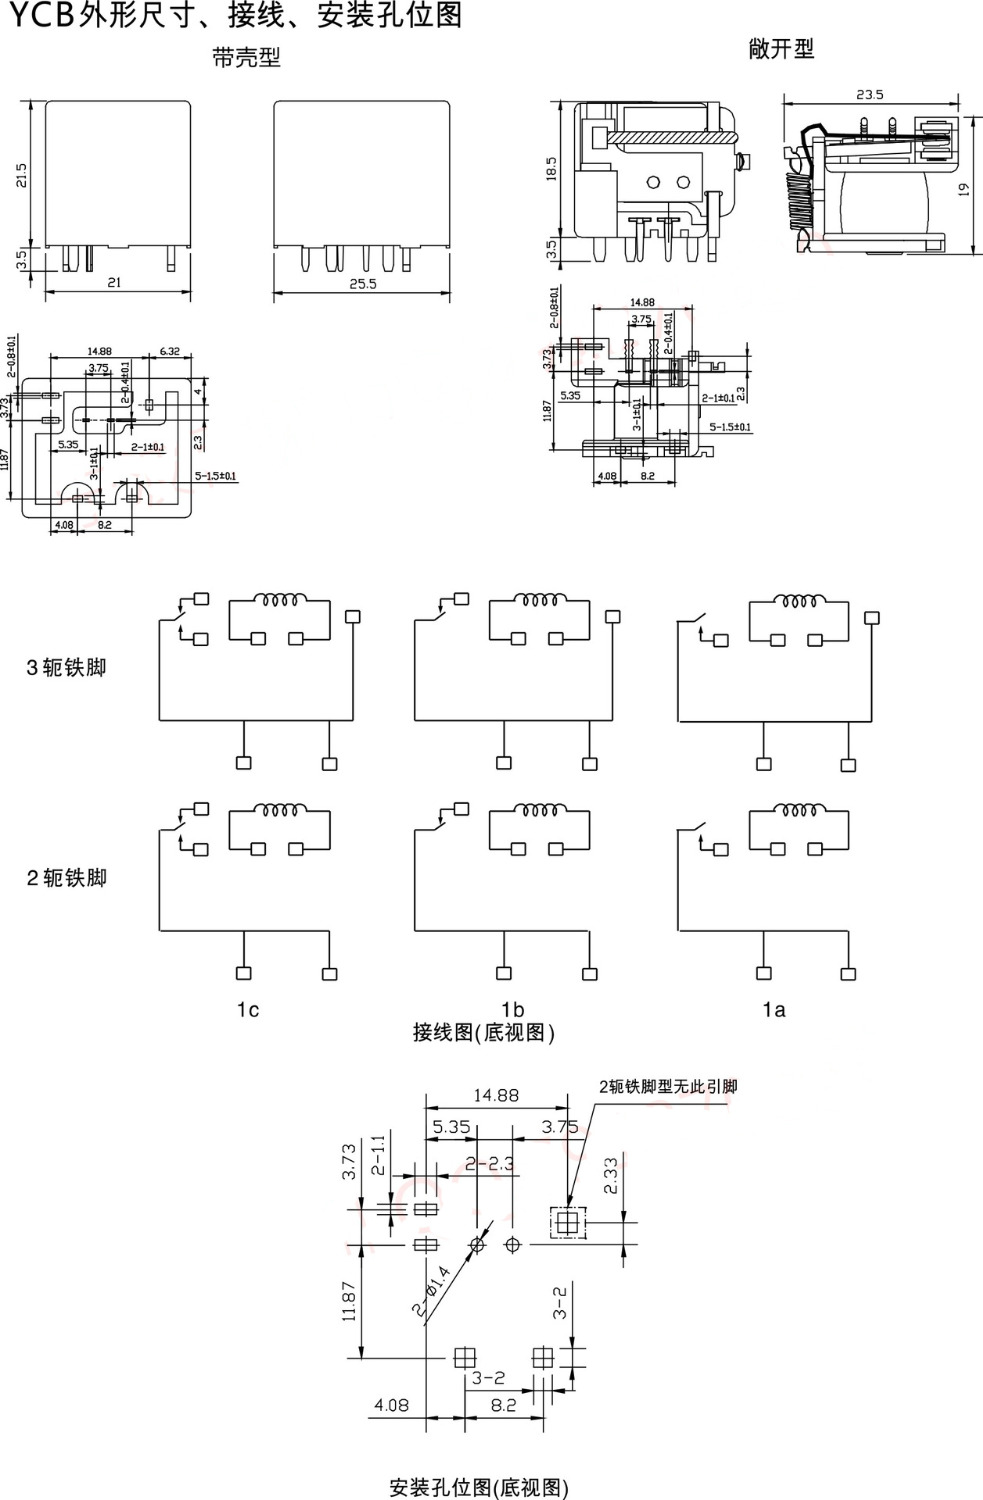 High Quality Automotive Relays Yl317 4120 4119 40a 12v Relay Motor Diagram 12 Volt Also With Reversing Wiring Control Car Relayswitches Free Shipping In Switches From